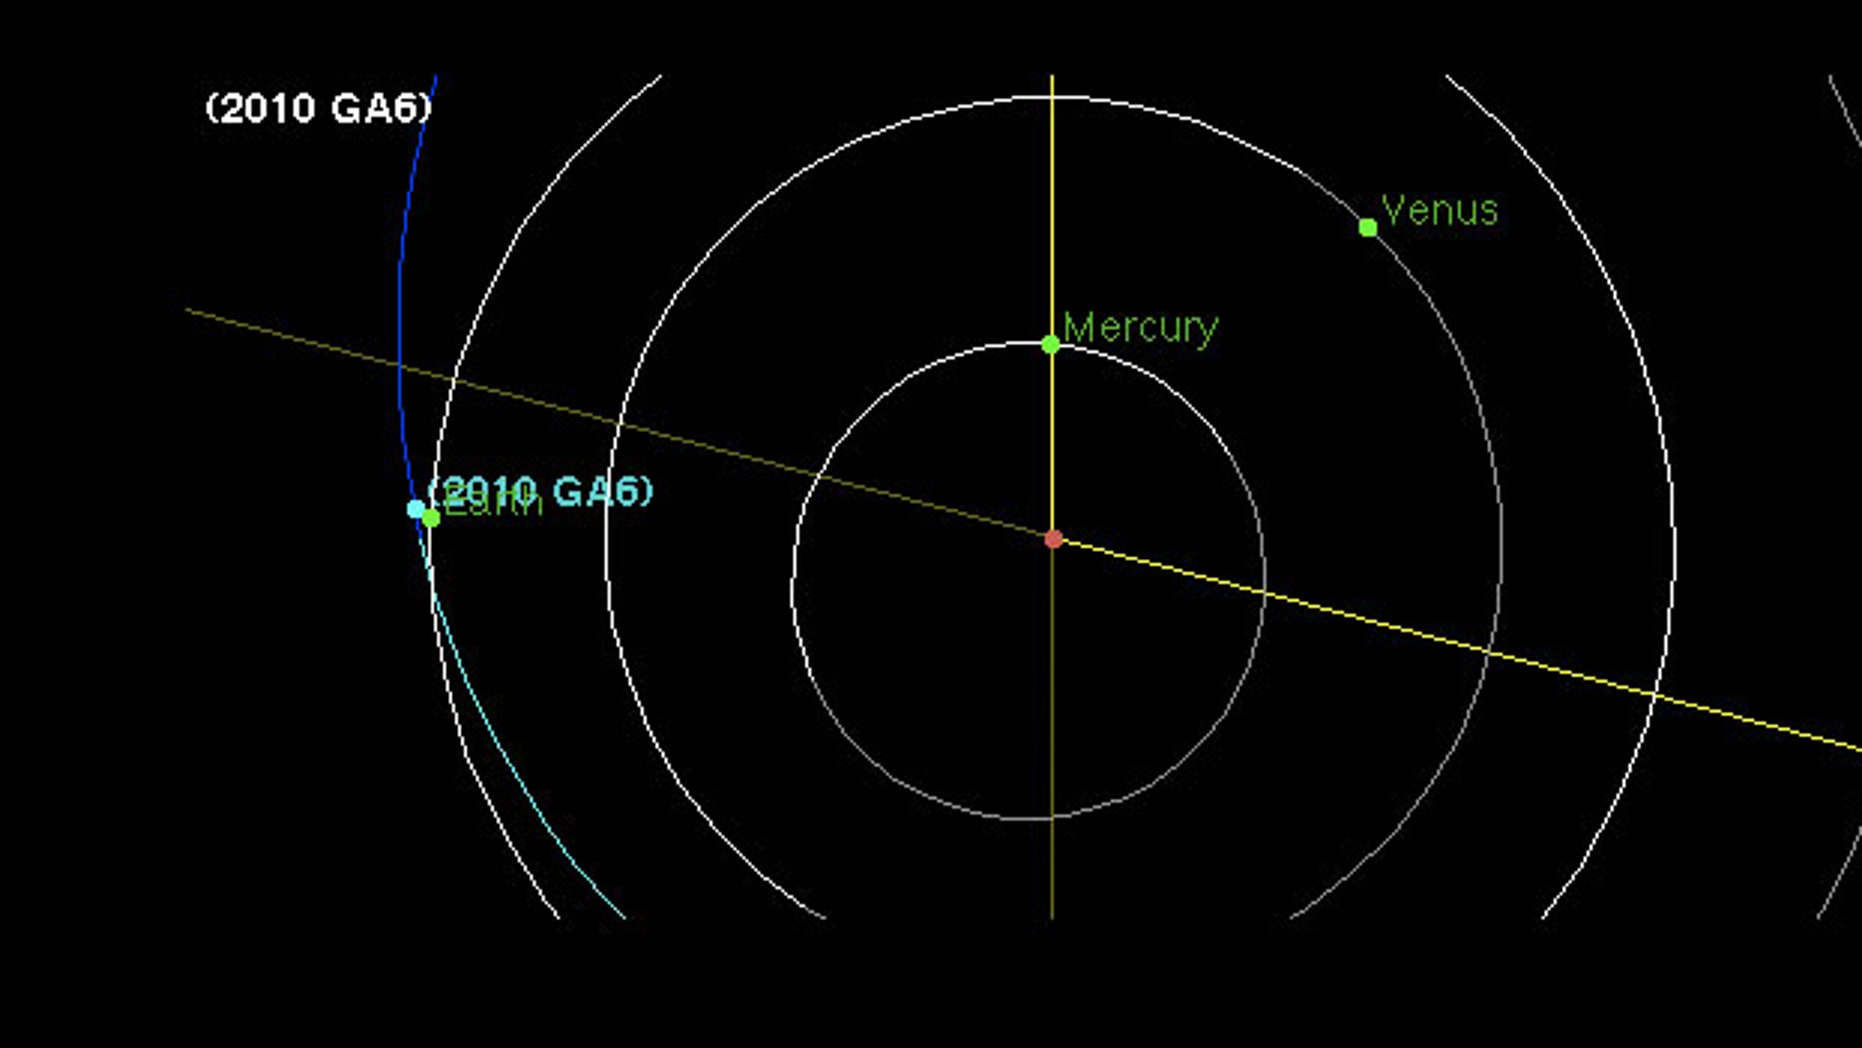 The orbit of newfound asteroid 2010 GA6 as it flies by Earth on April 8, 2010 at a distance of 223,000 miles, about nine-tenths the distance between Earth and the moon.